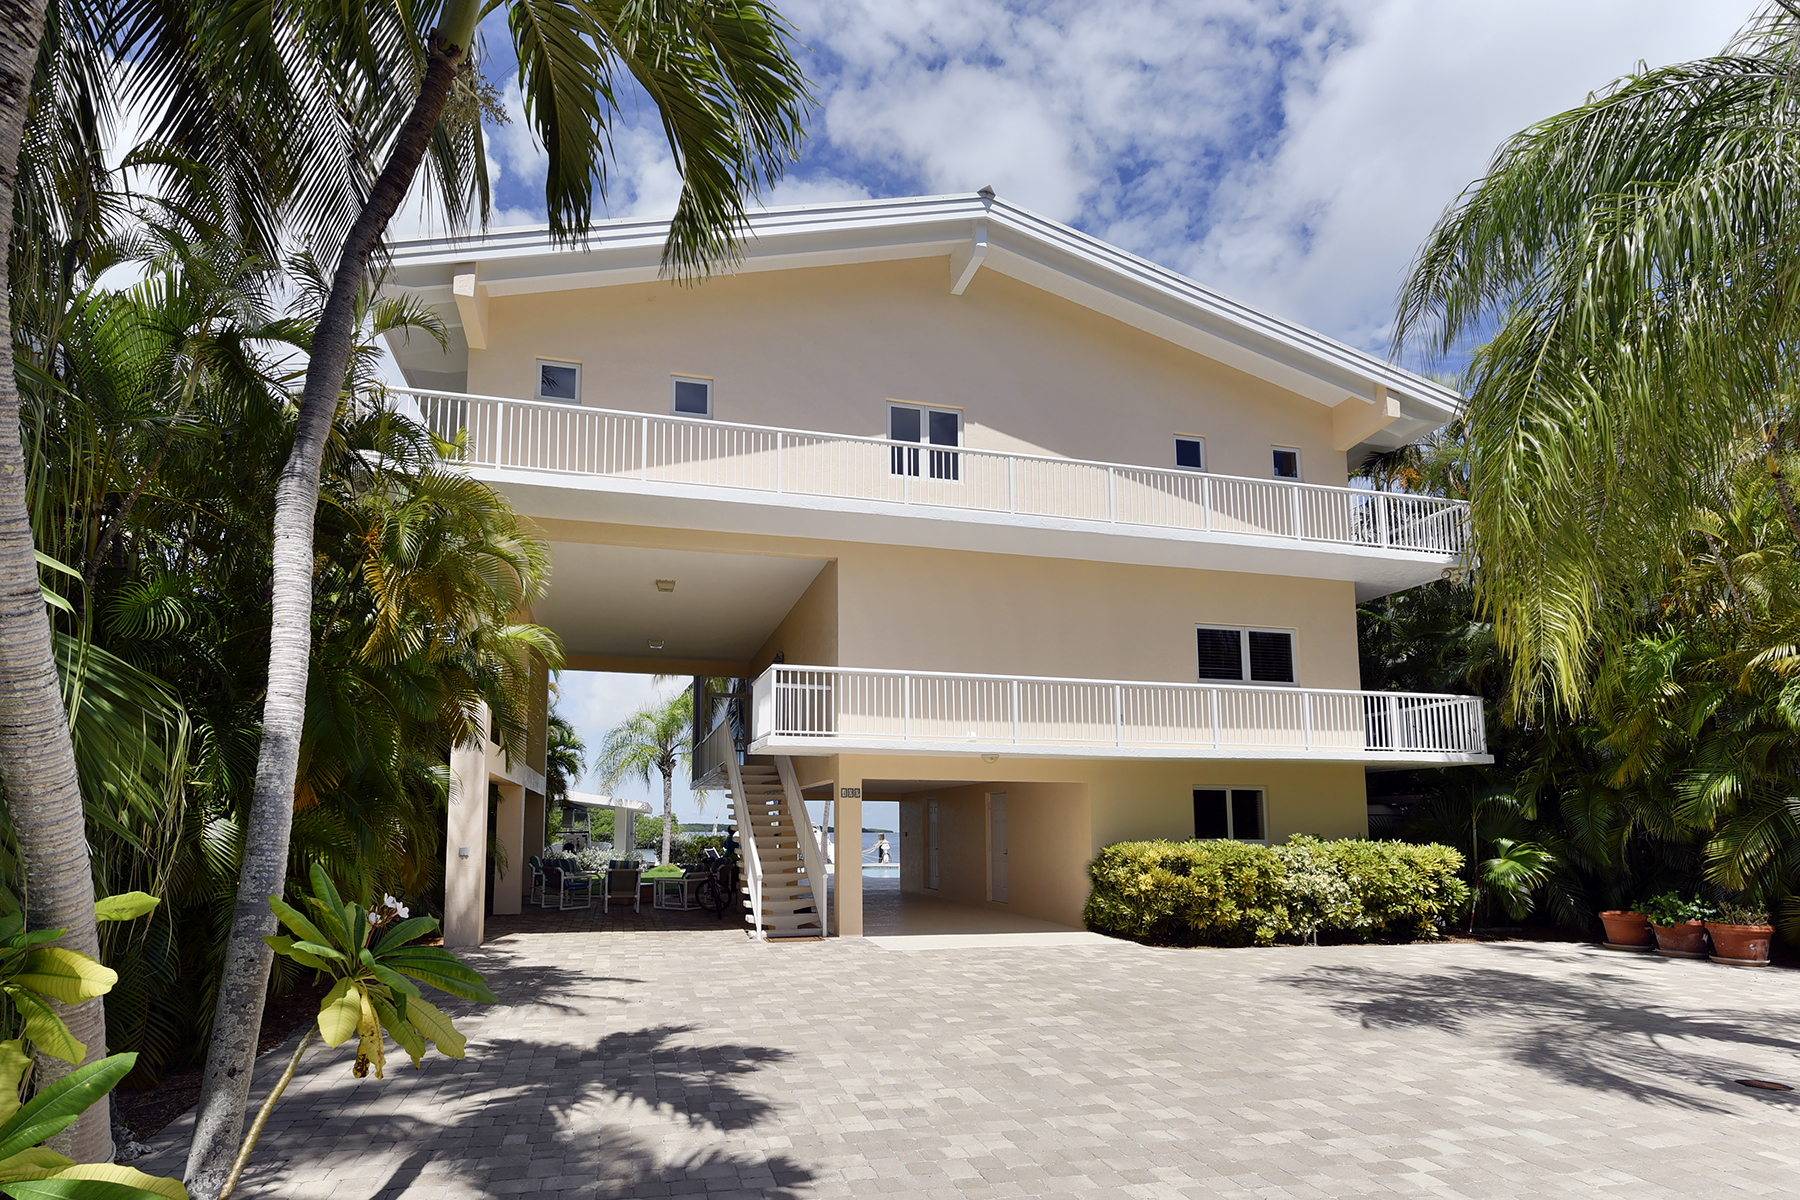 Additional photo for property listing at Fabulous Bayfront Home 400 S Coconut Palm Blvd Islamorada, Florida 33070 Estados Unidos